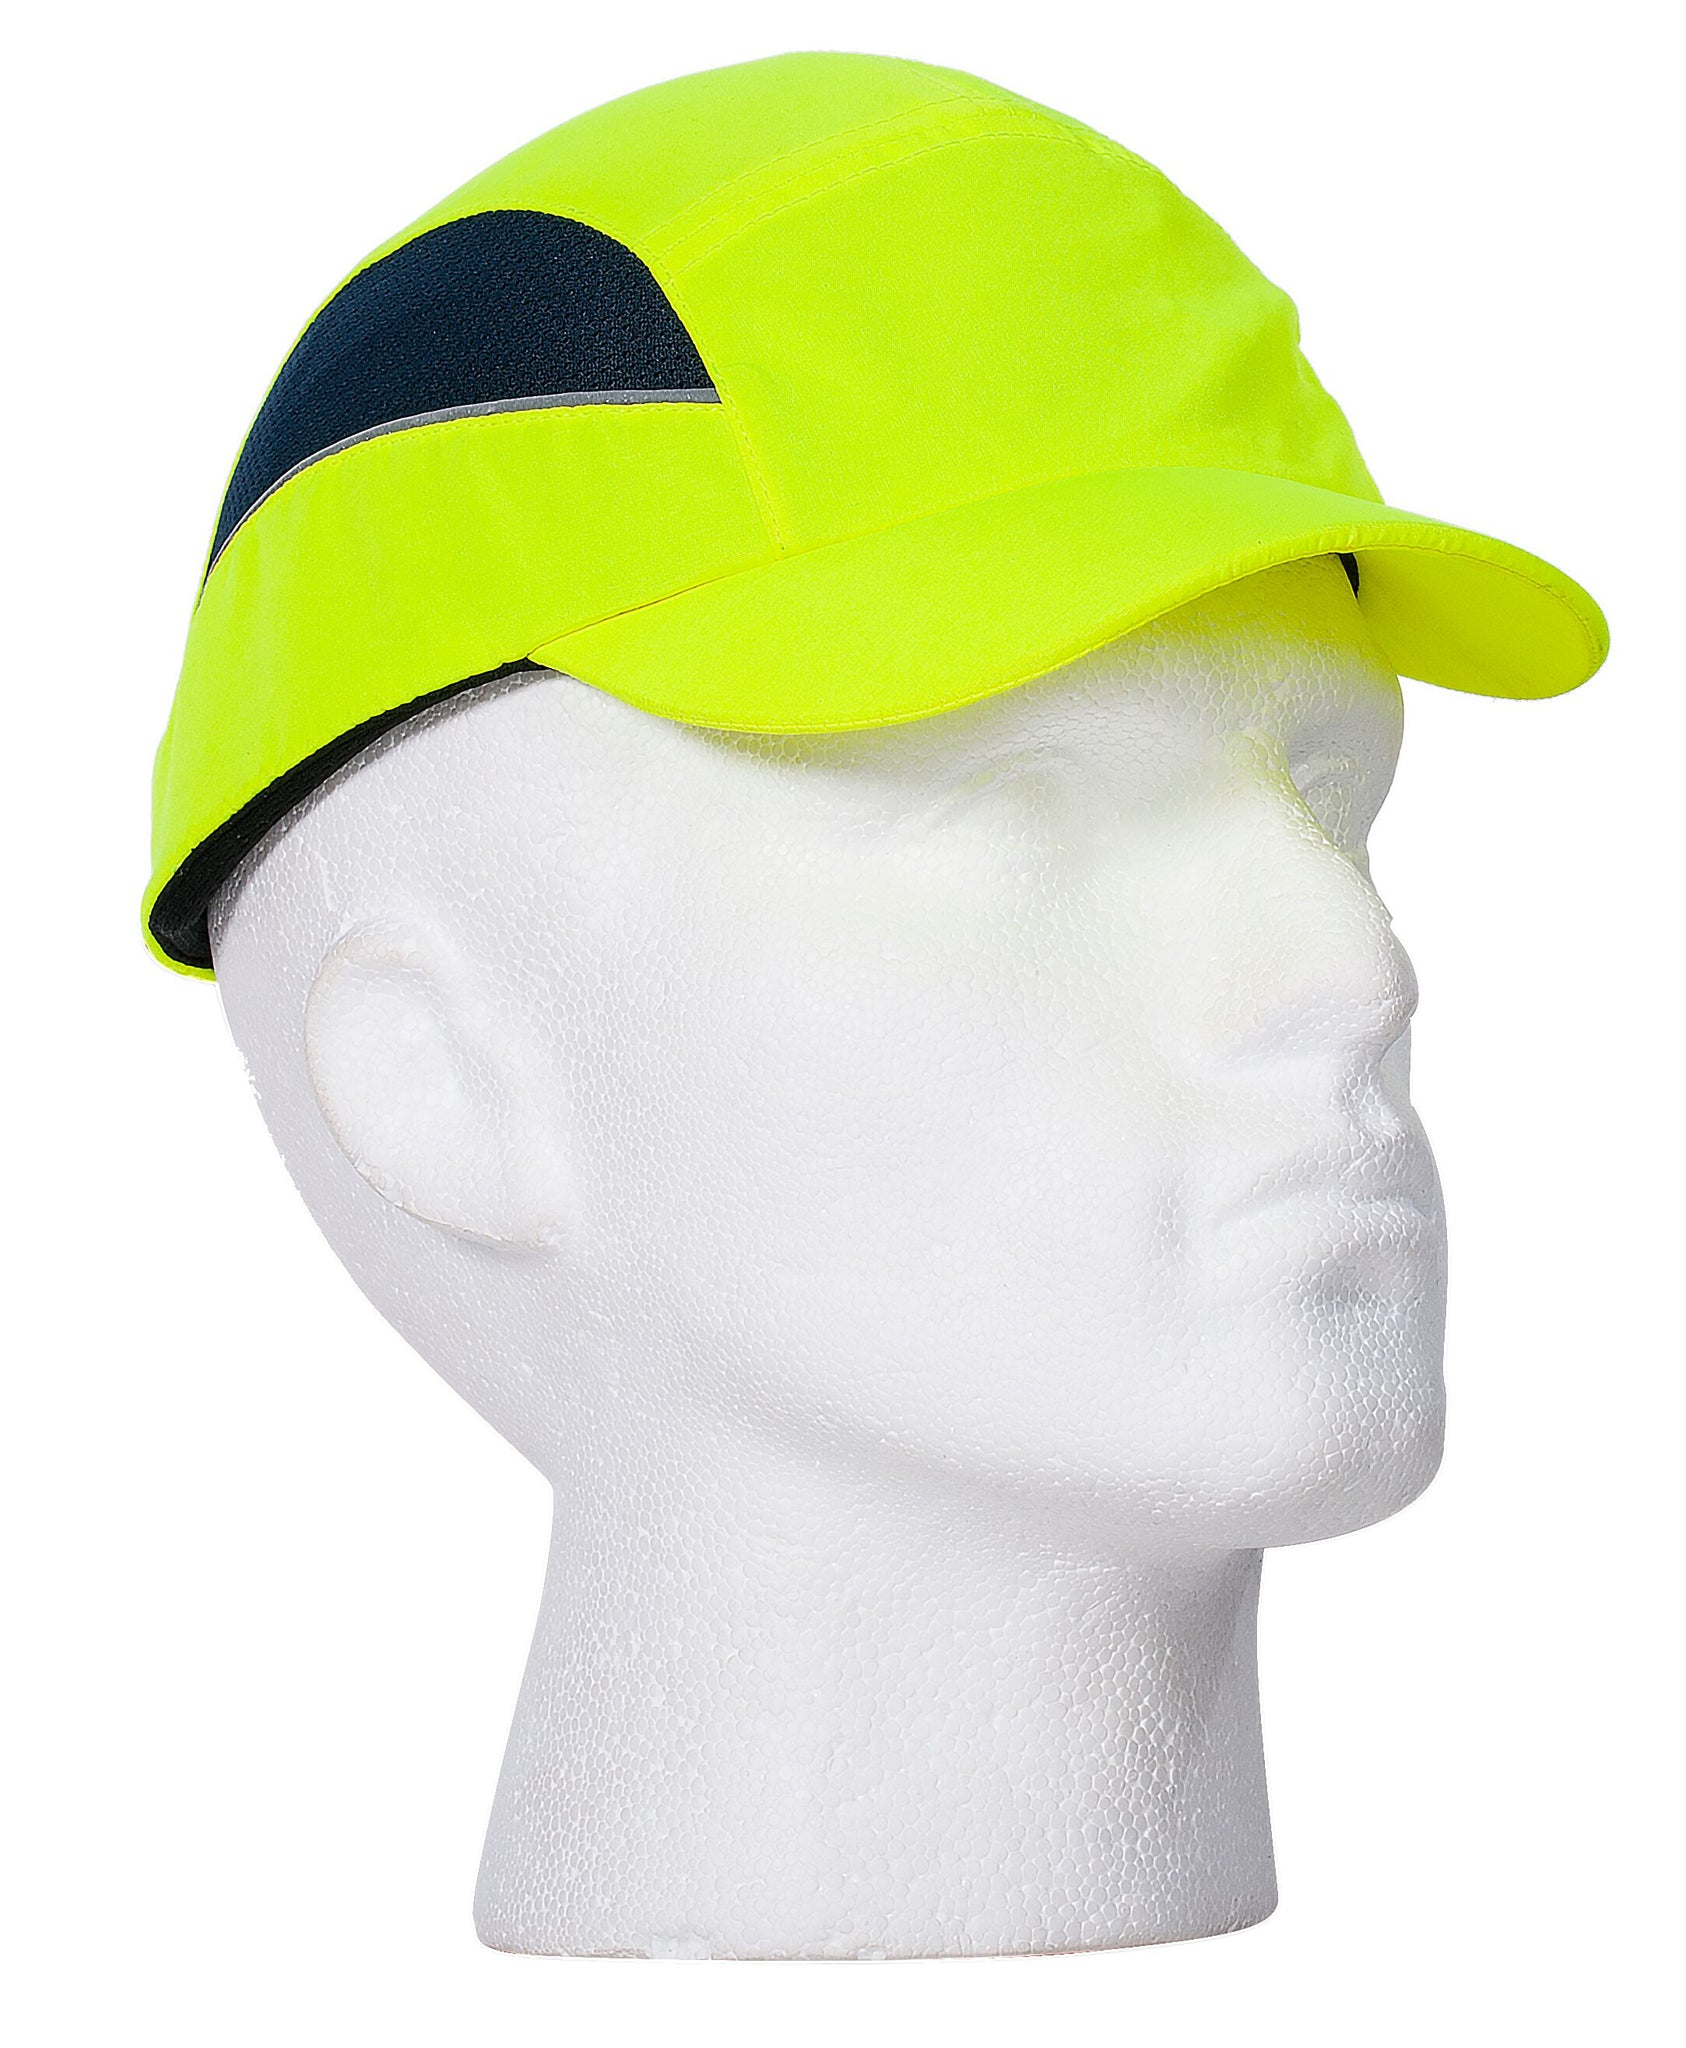 Portwest PS59 AirTech Bump Cap Mid Peak